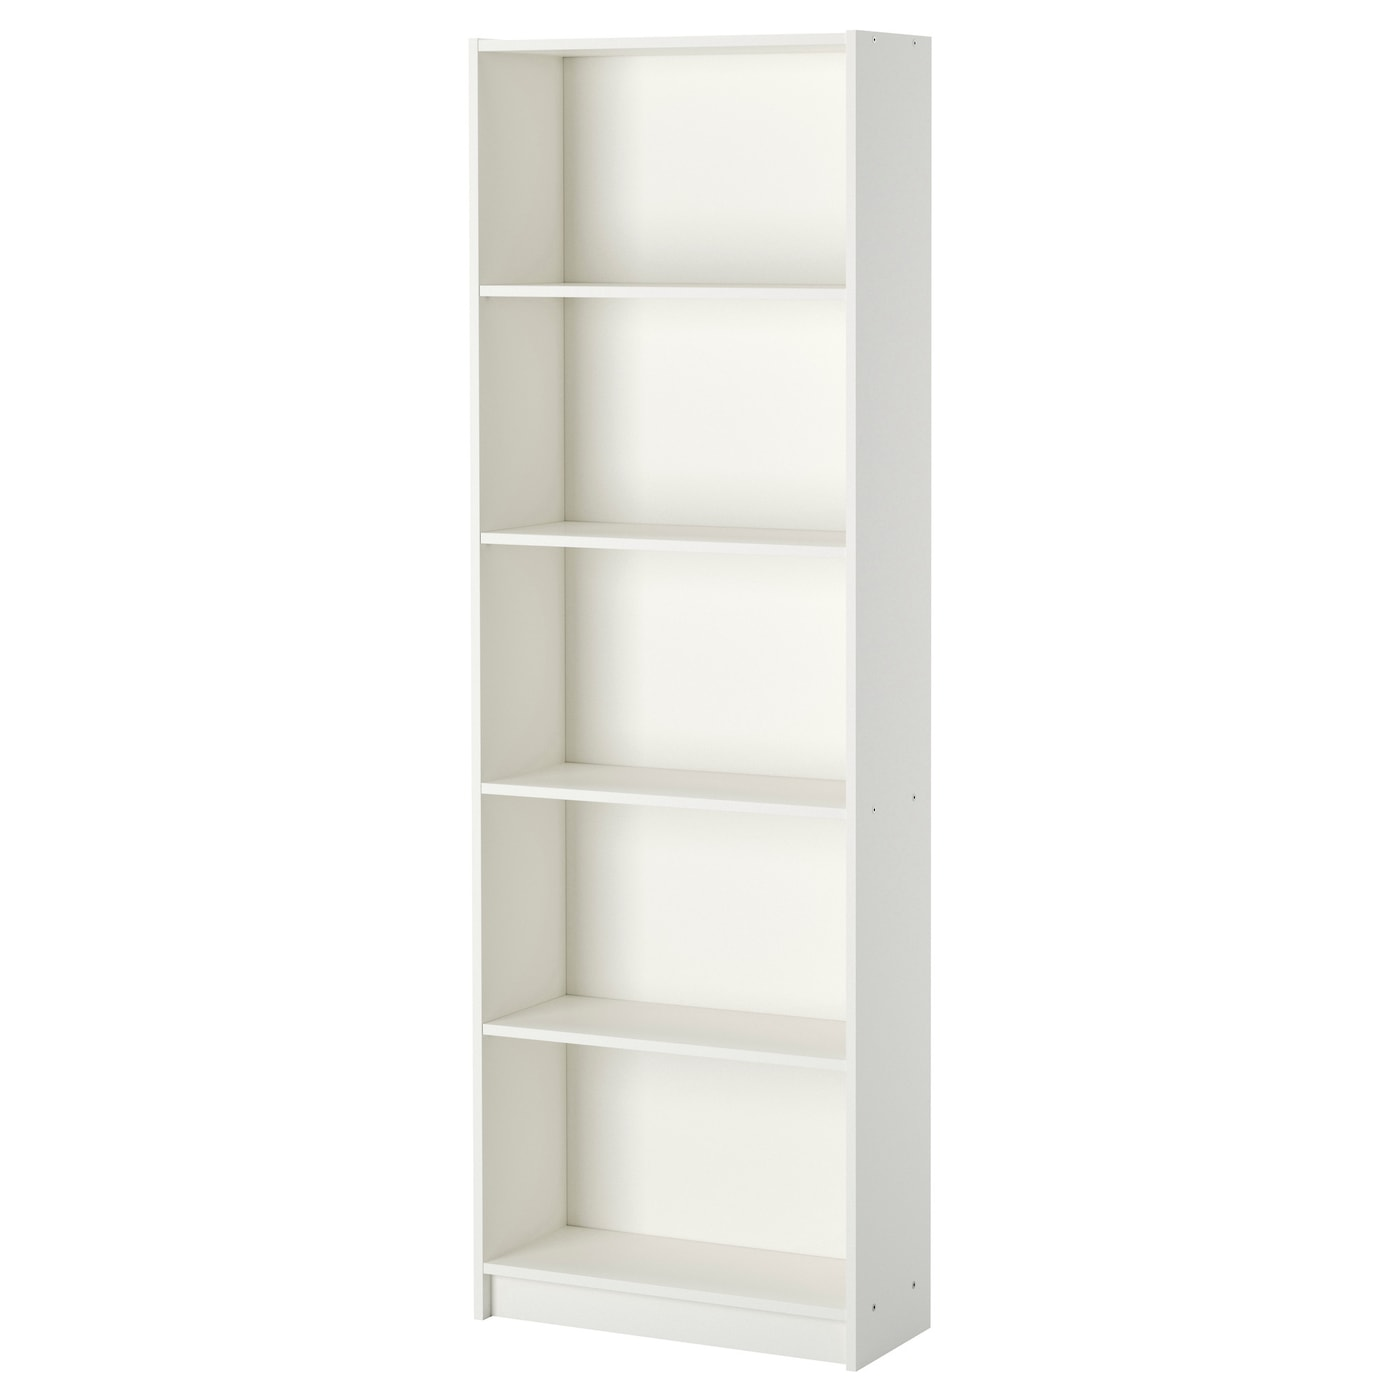 gersby bookcase white 60 x 180 cm ikea. Black Bedroom Furniture Sets. Home Design Ideas